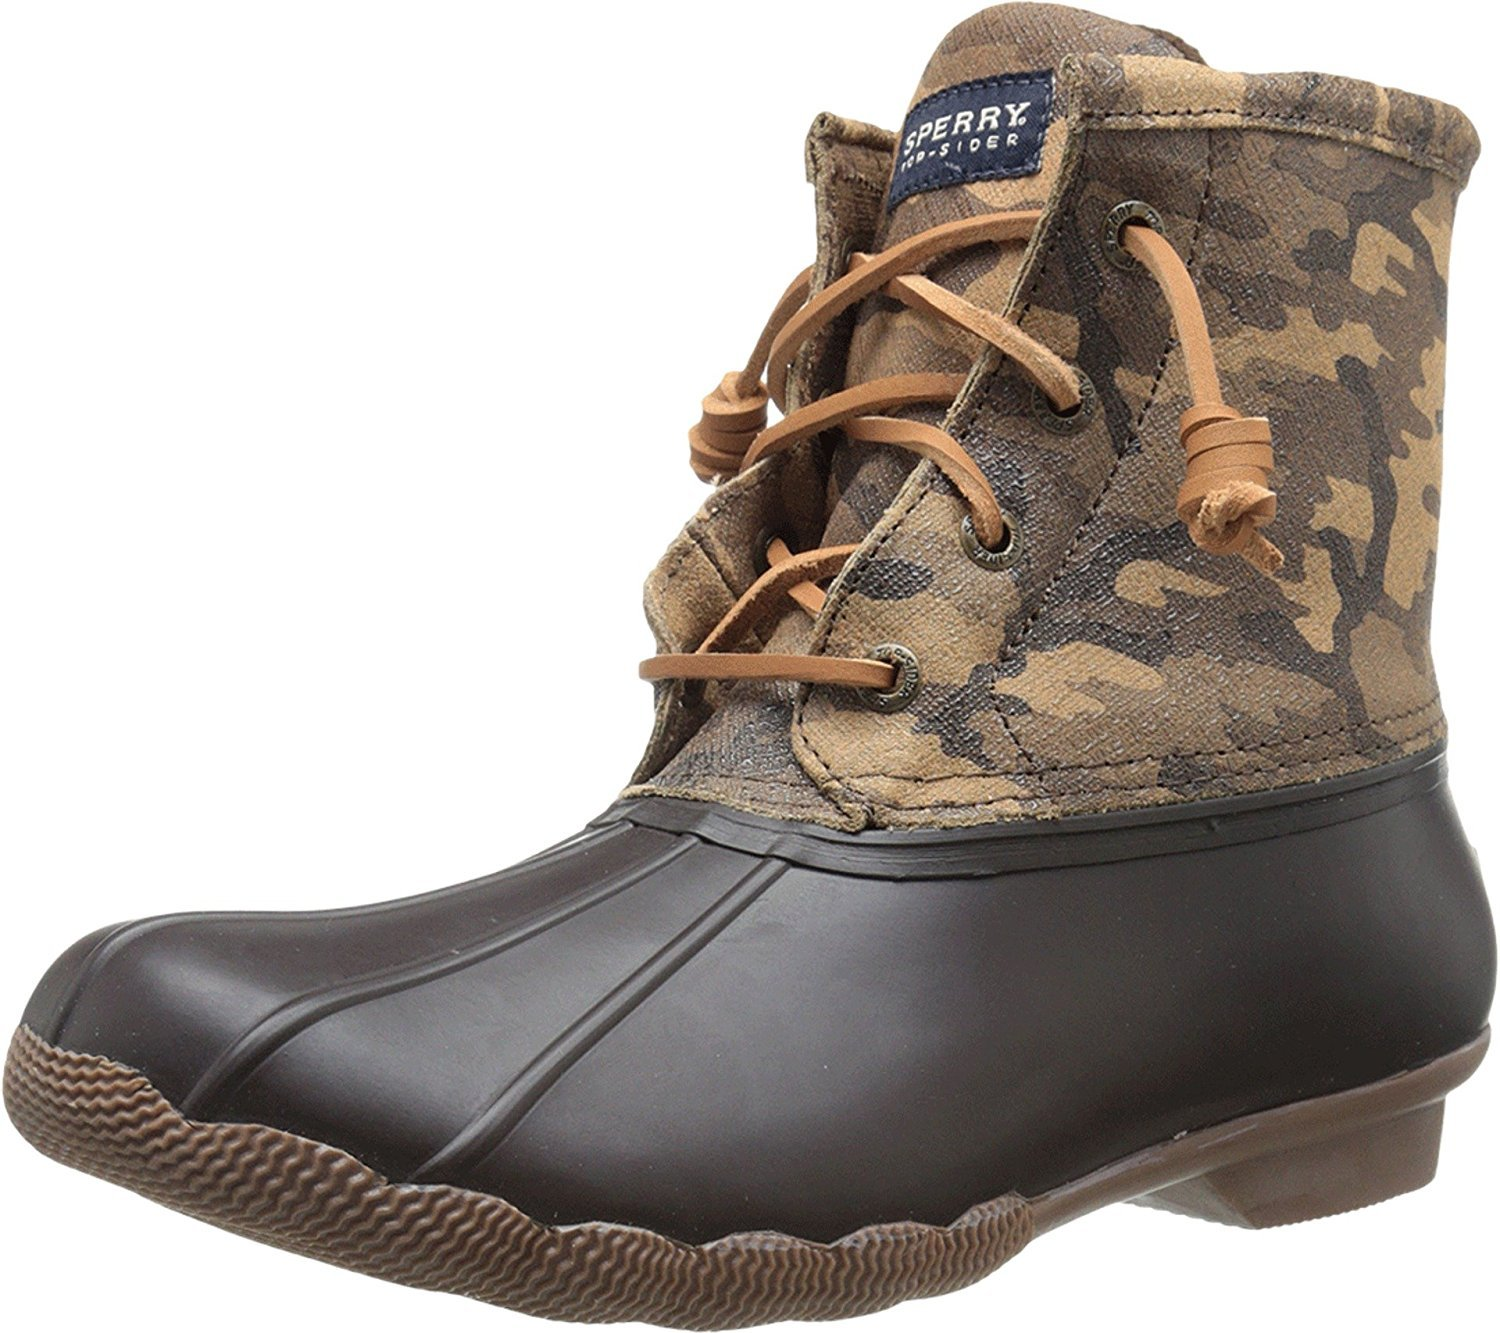 Sperry Top-Sider Womens Saltwater Novelty Brown Camo Boot 12 M (B)